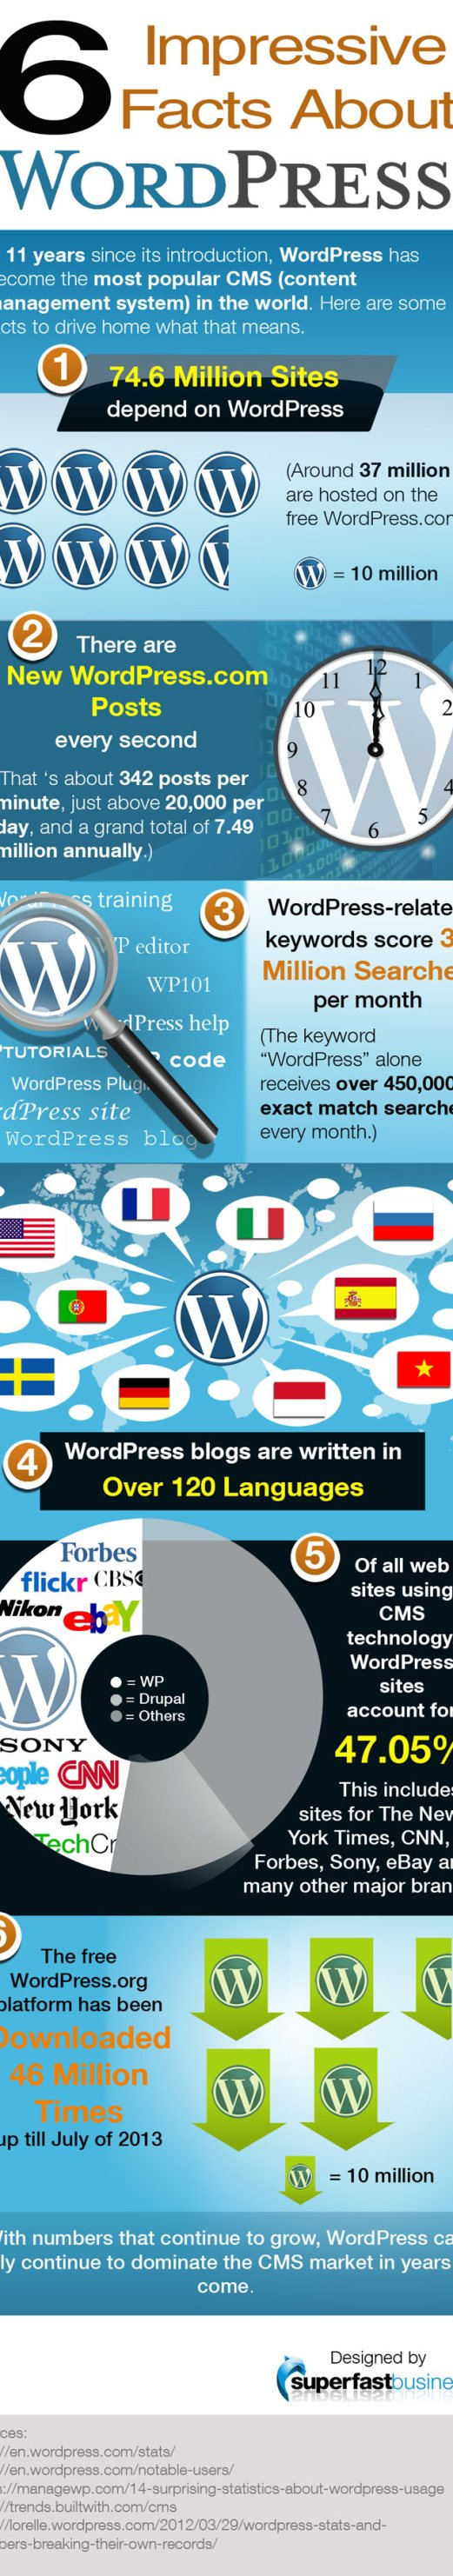 wordpress-infographic